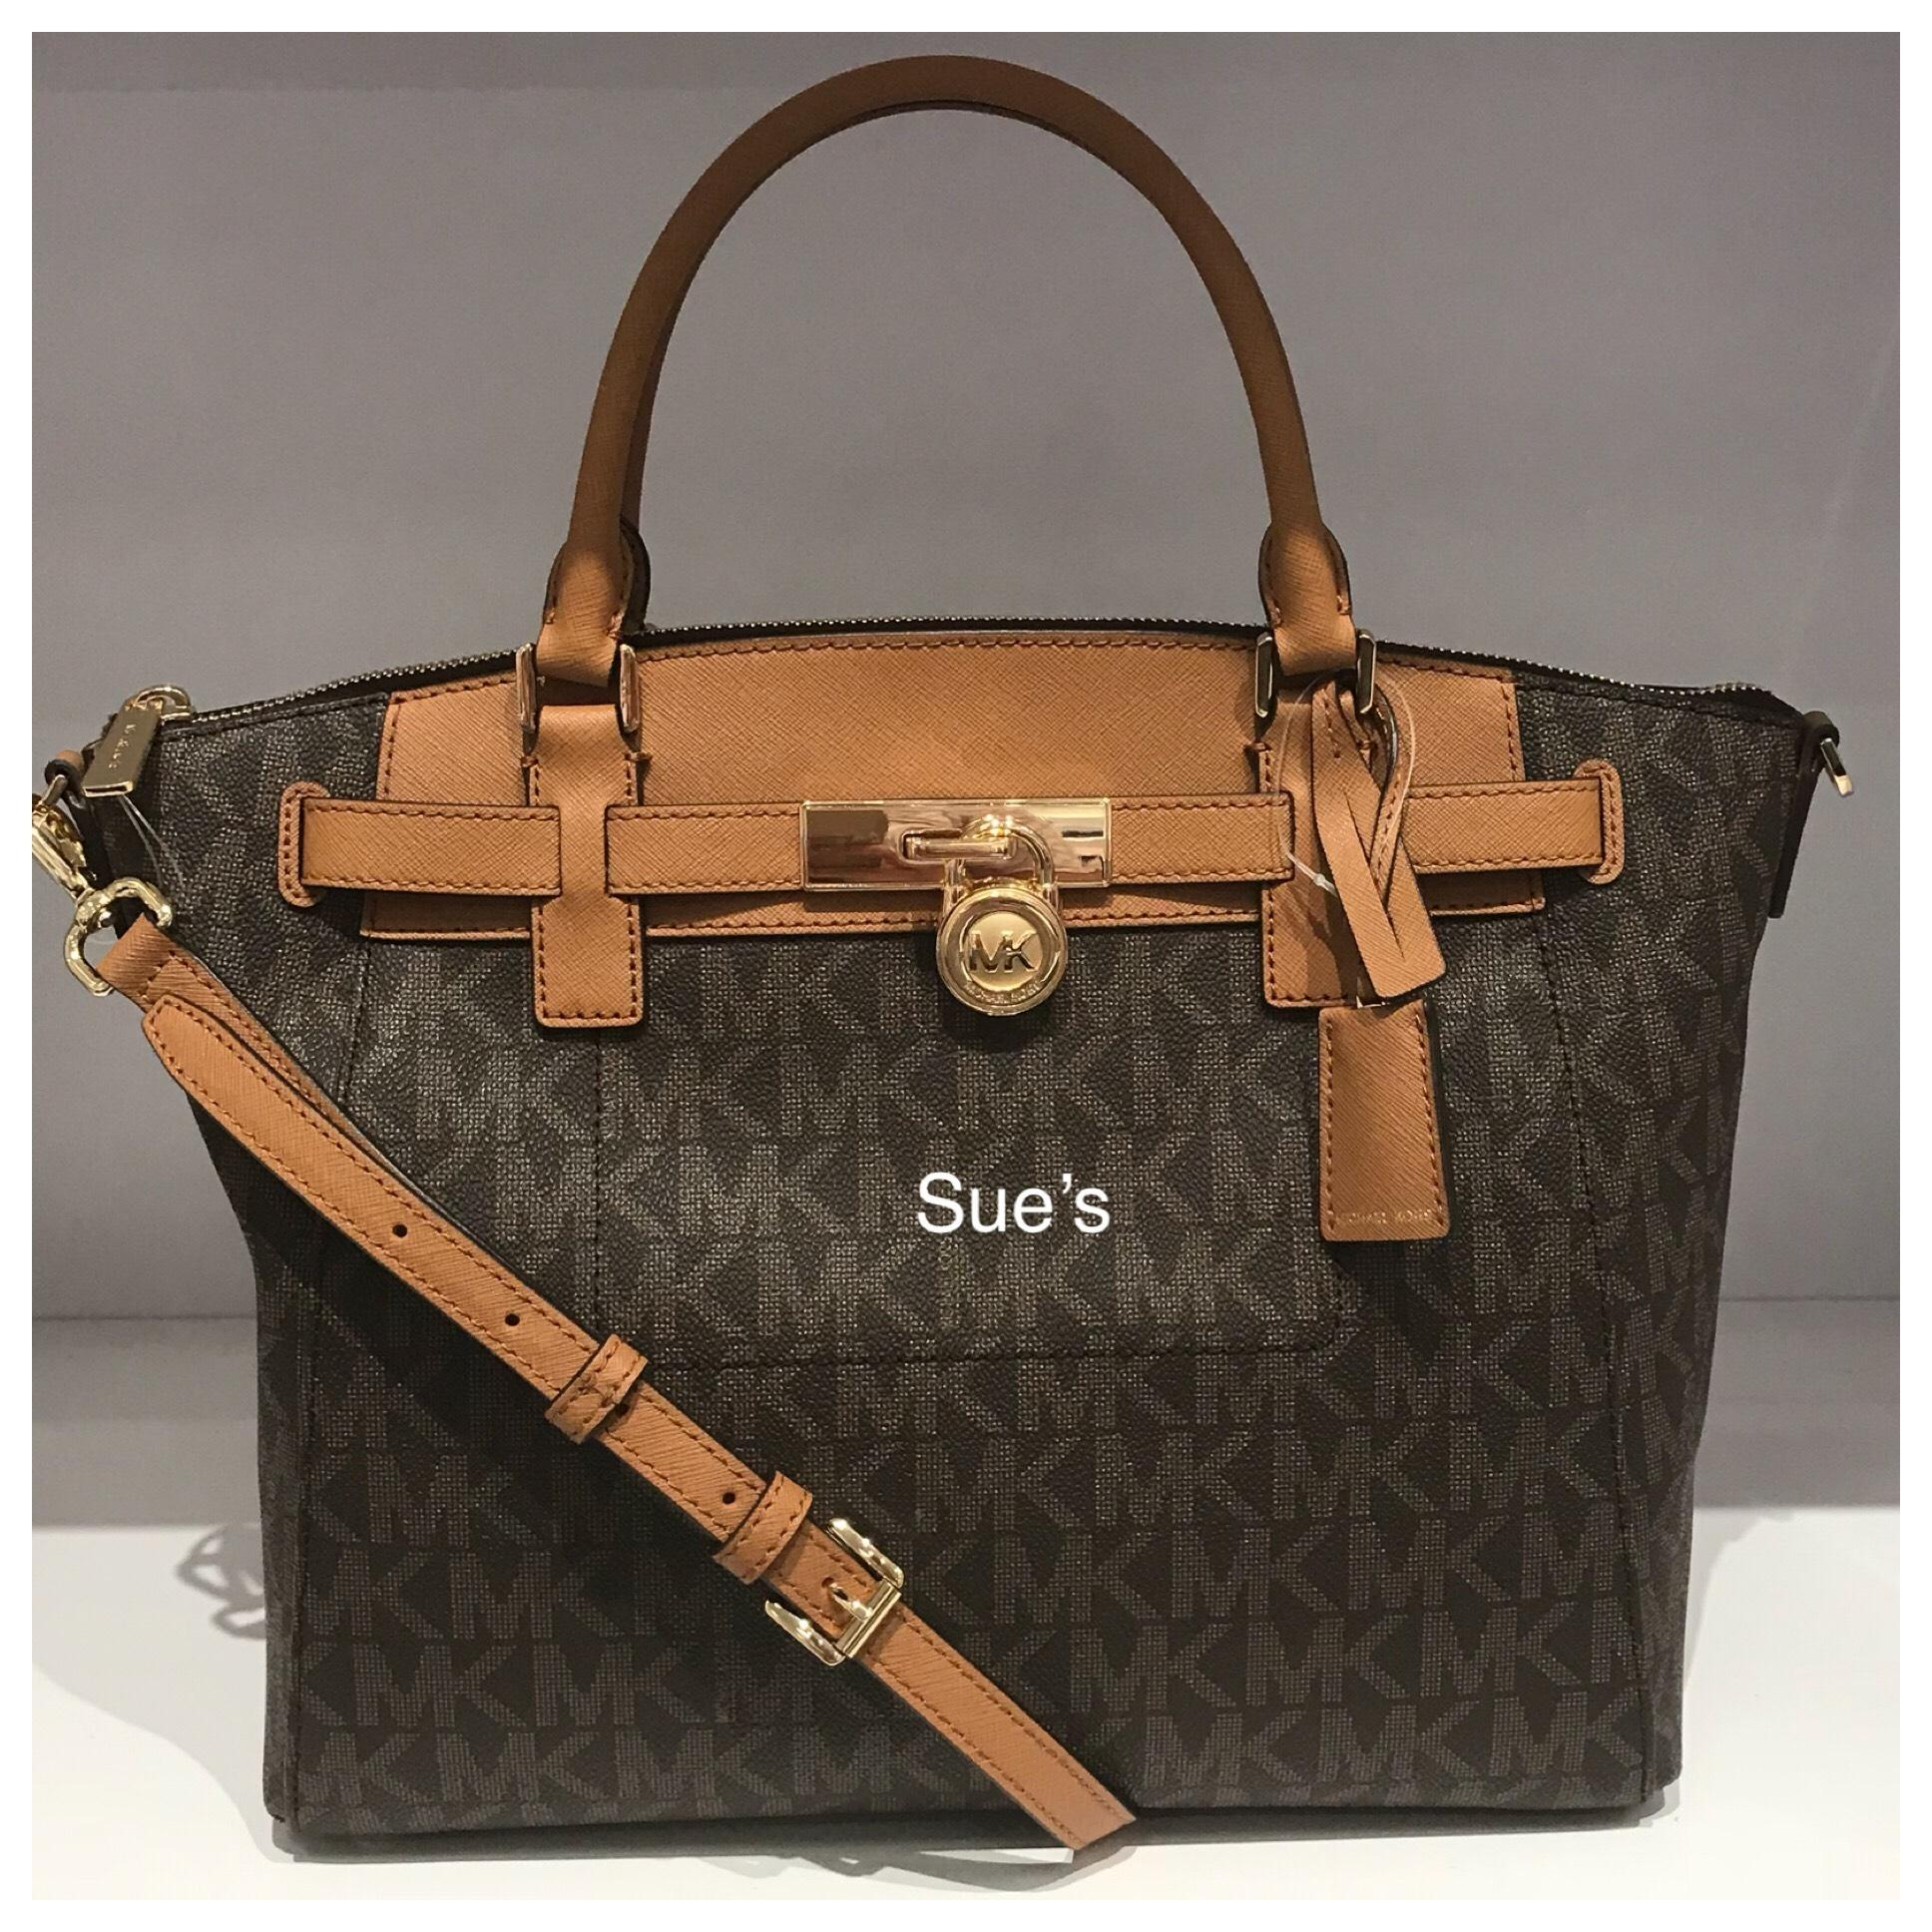 9c60a327b7cb ... leather satchel tradesy ac4e4 227bd  closeout michael kors satchel  c1695 b6a0d